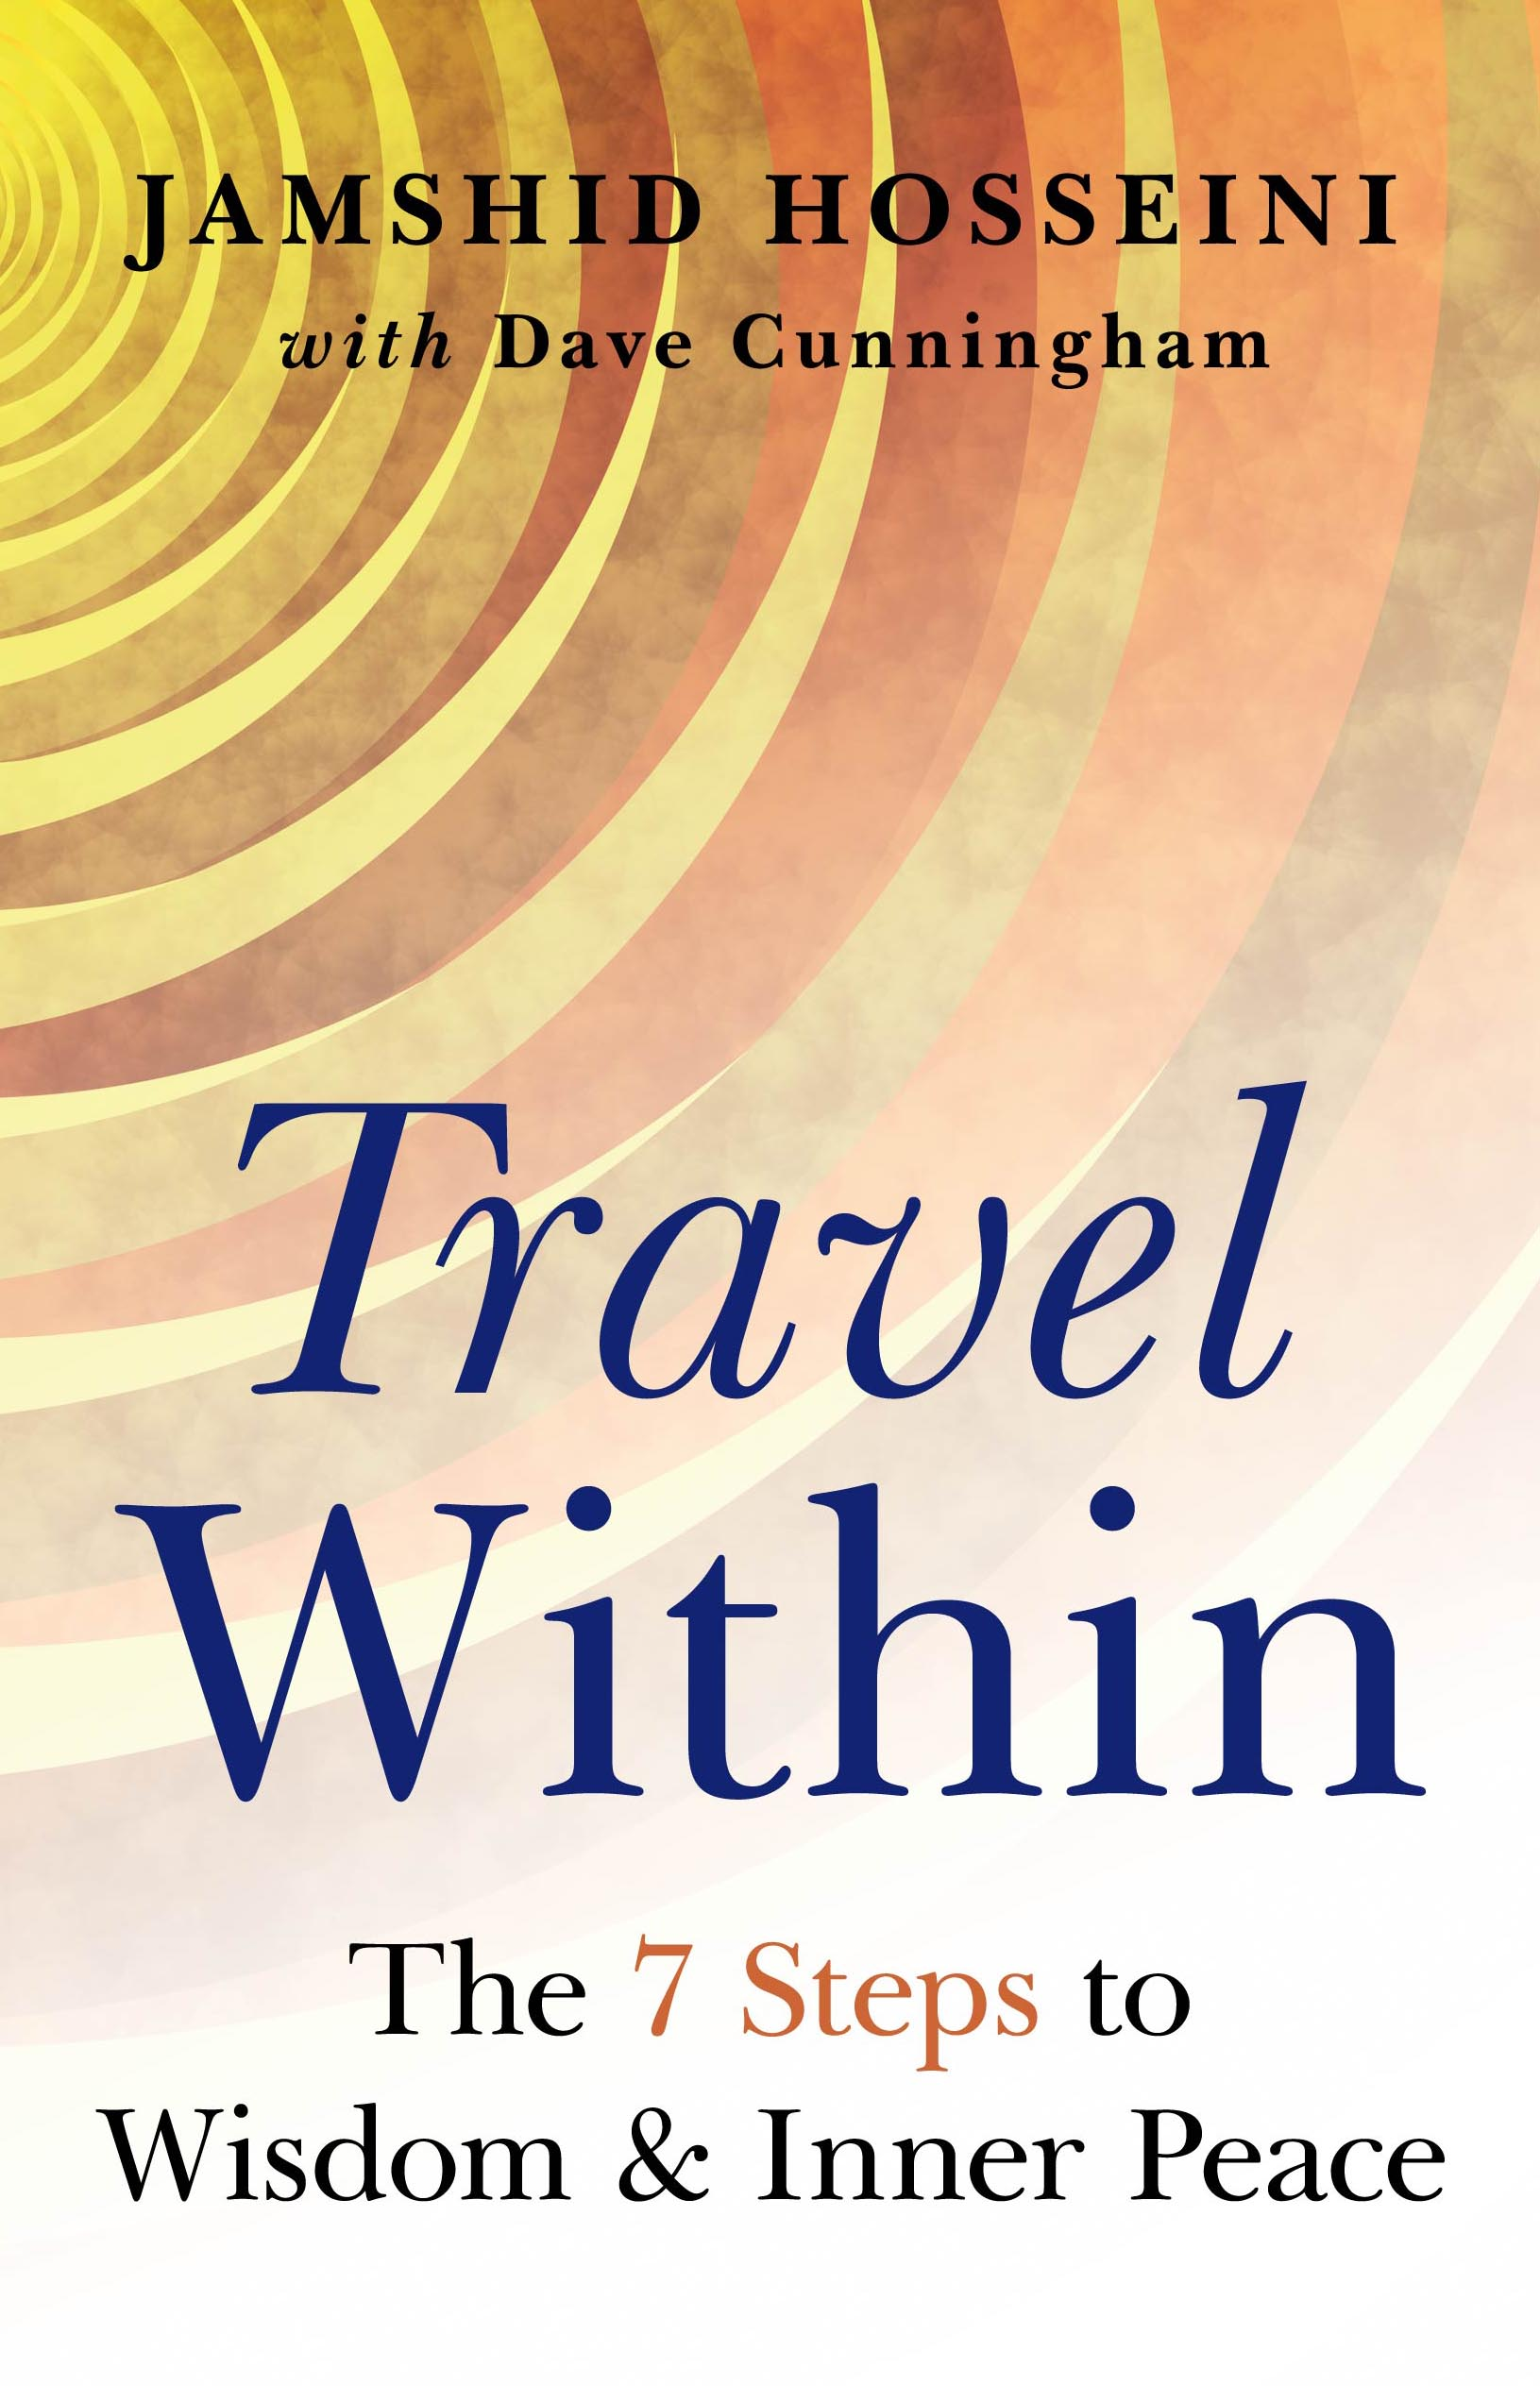 Travel Within The 7 Steps to Wisdom & Inner Peace - Jamshid Hosseini with Dave Cunningham